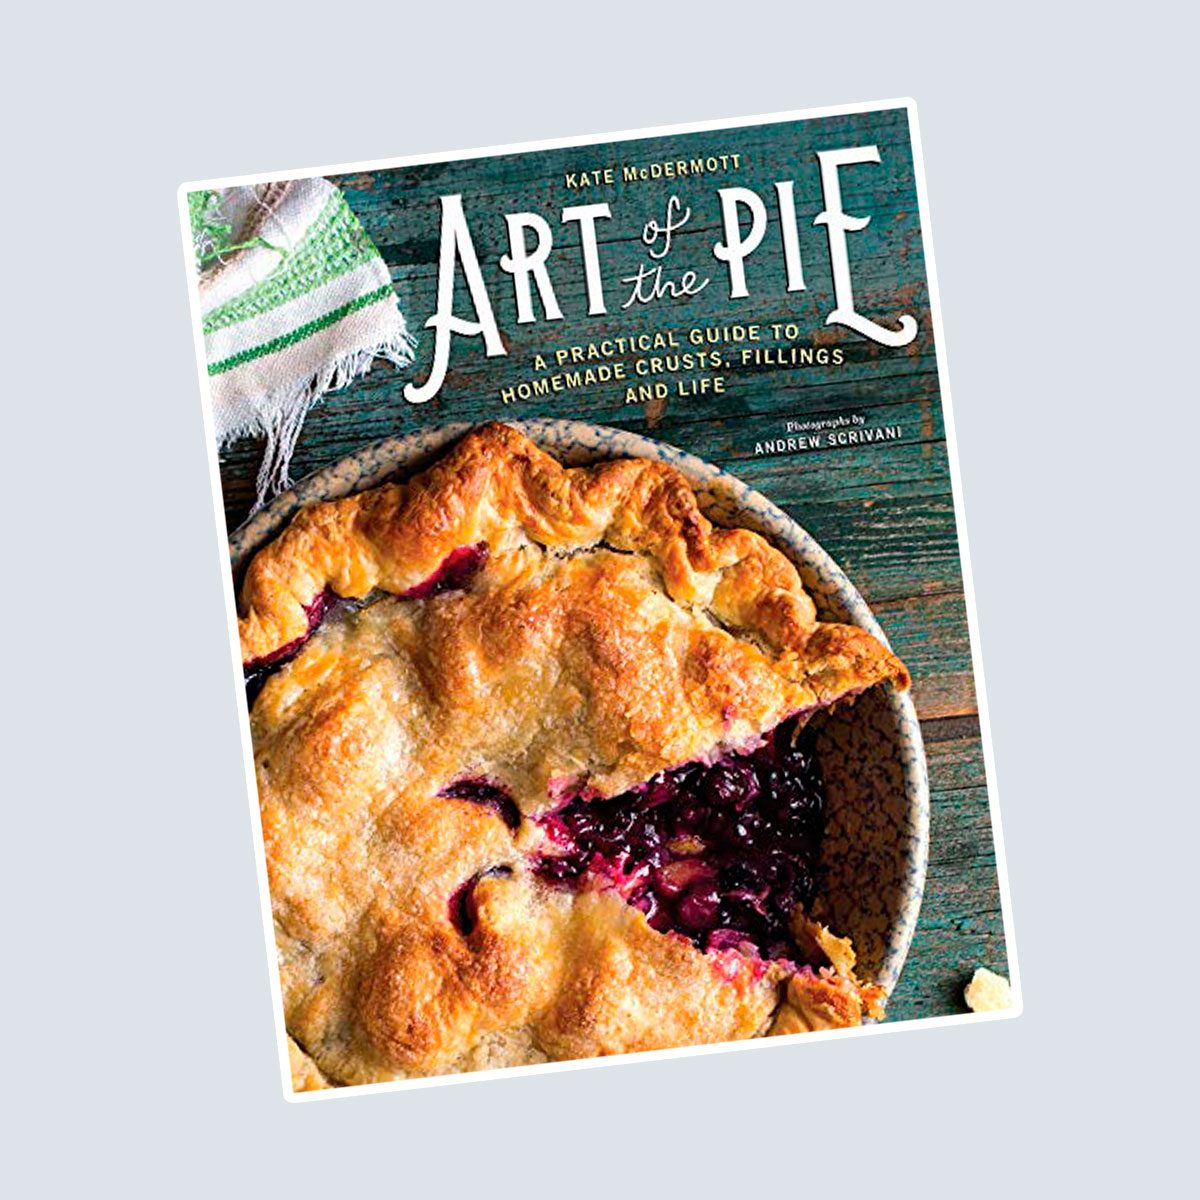 Art of the Pie: A Practical Guide to Homemade Crusts, Fillings and Life